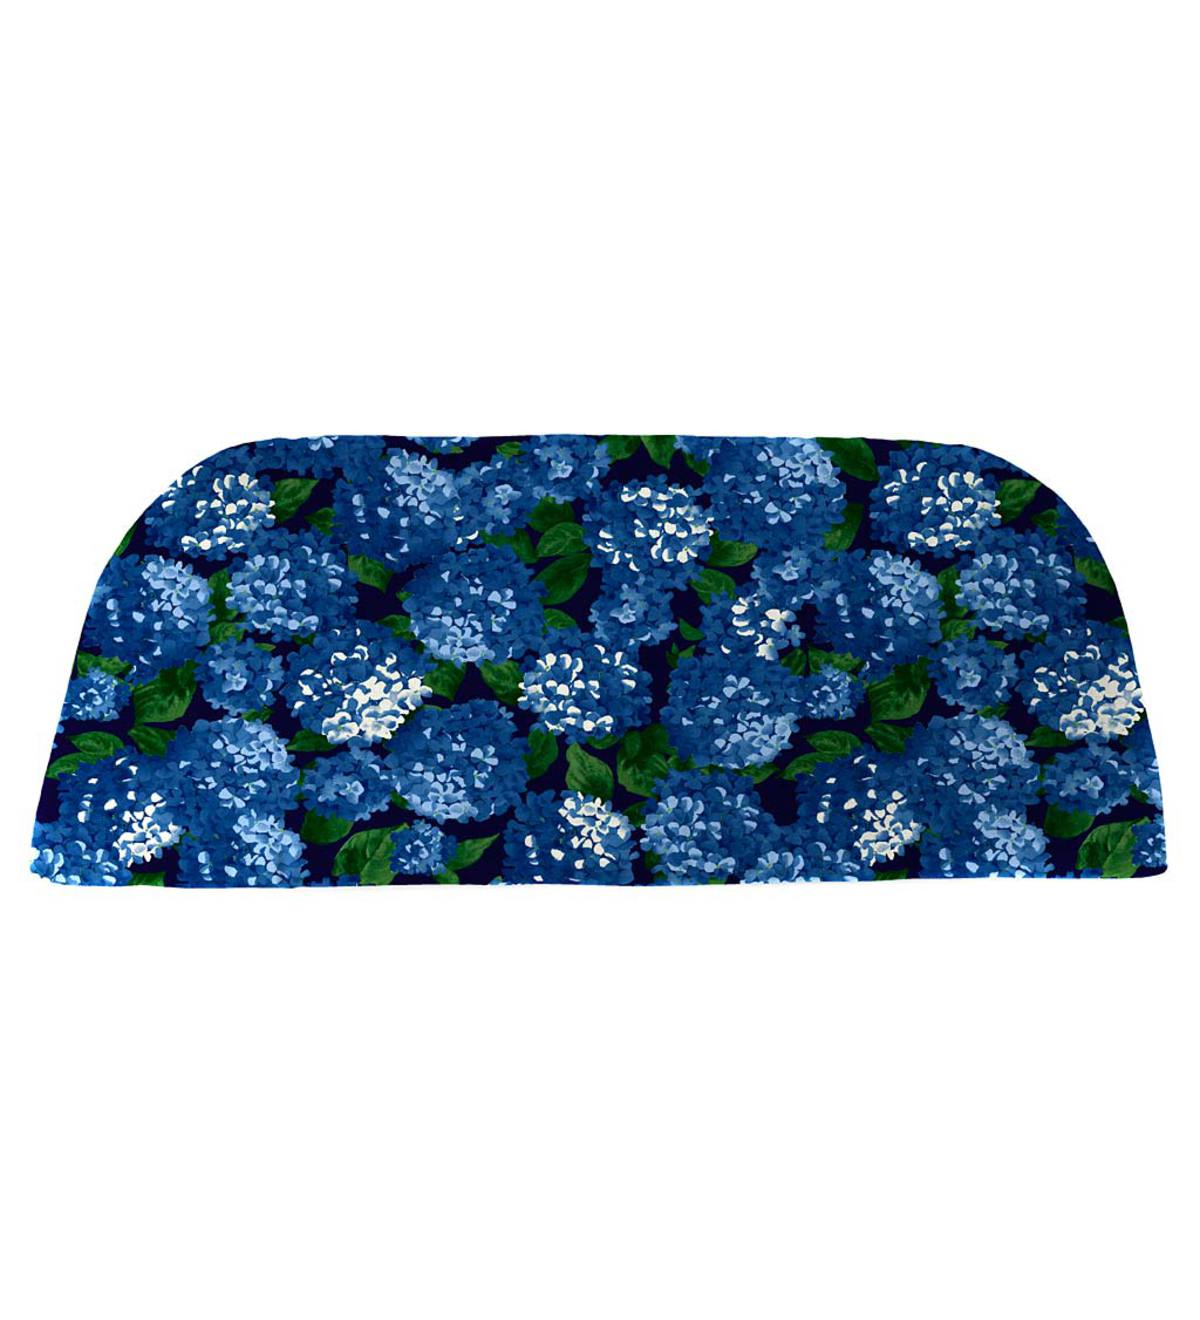 "Polyester Classic Swing/Bench Cushion, 41"" x 18¾"" x 3"" - Midnight Hydrangea"